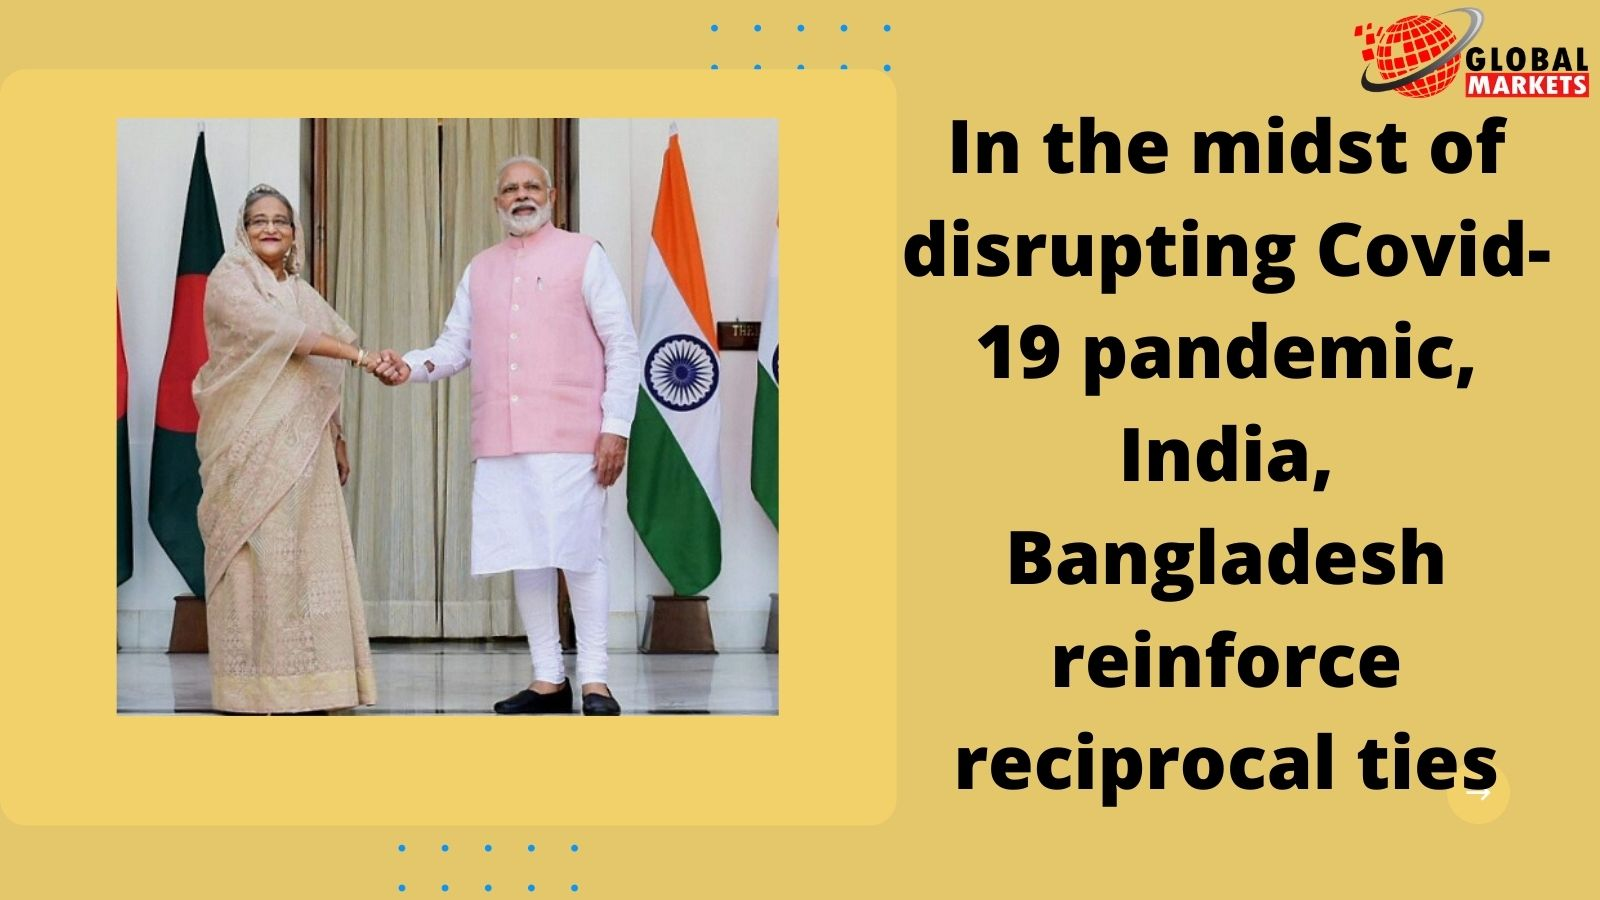 In the midst of disrupting Covid-19 pandemic, India, Bangladesh reinforce reciprocal ties